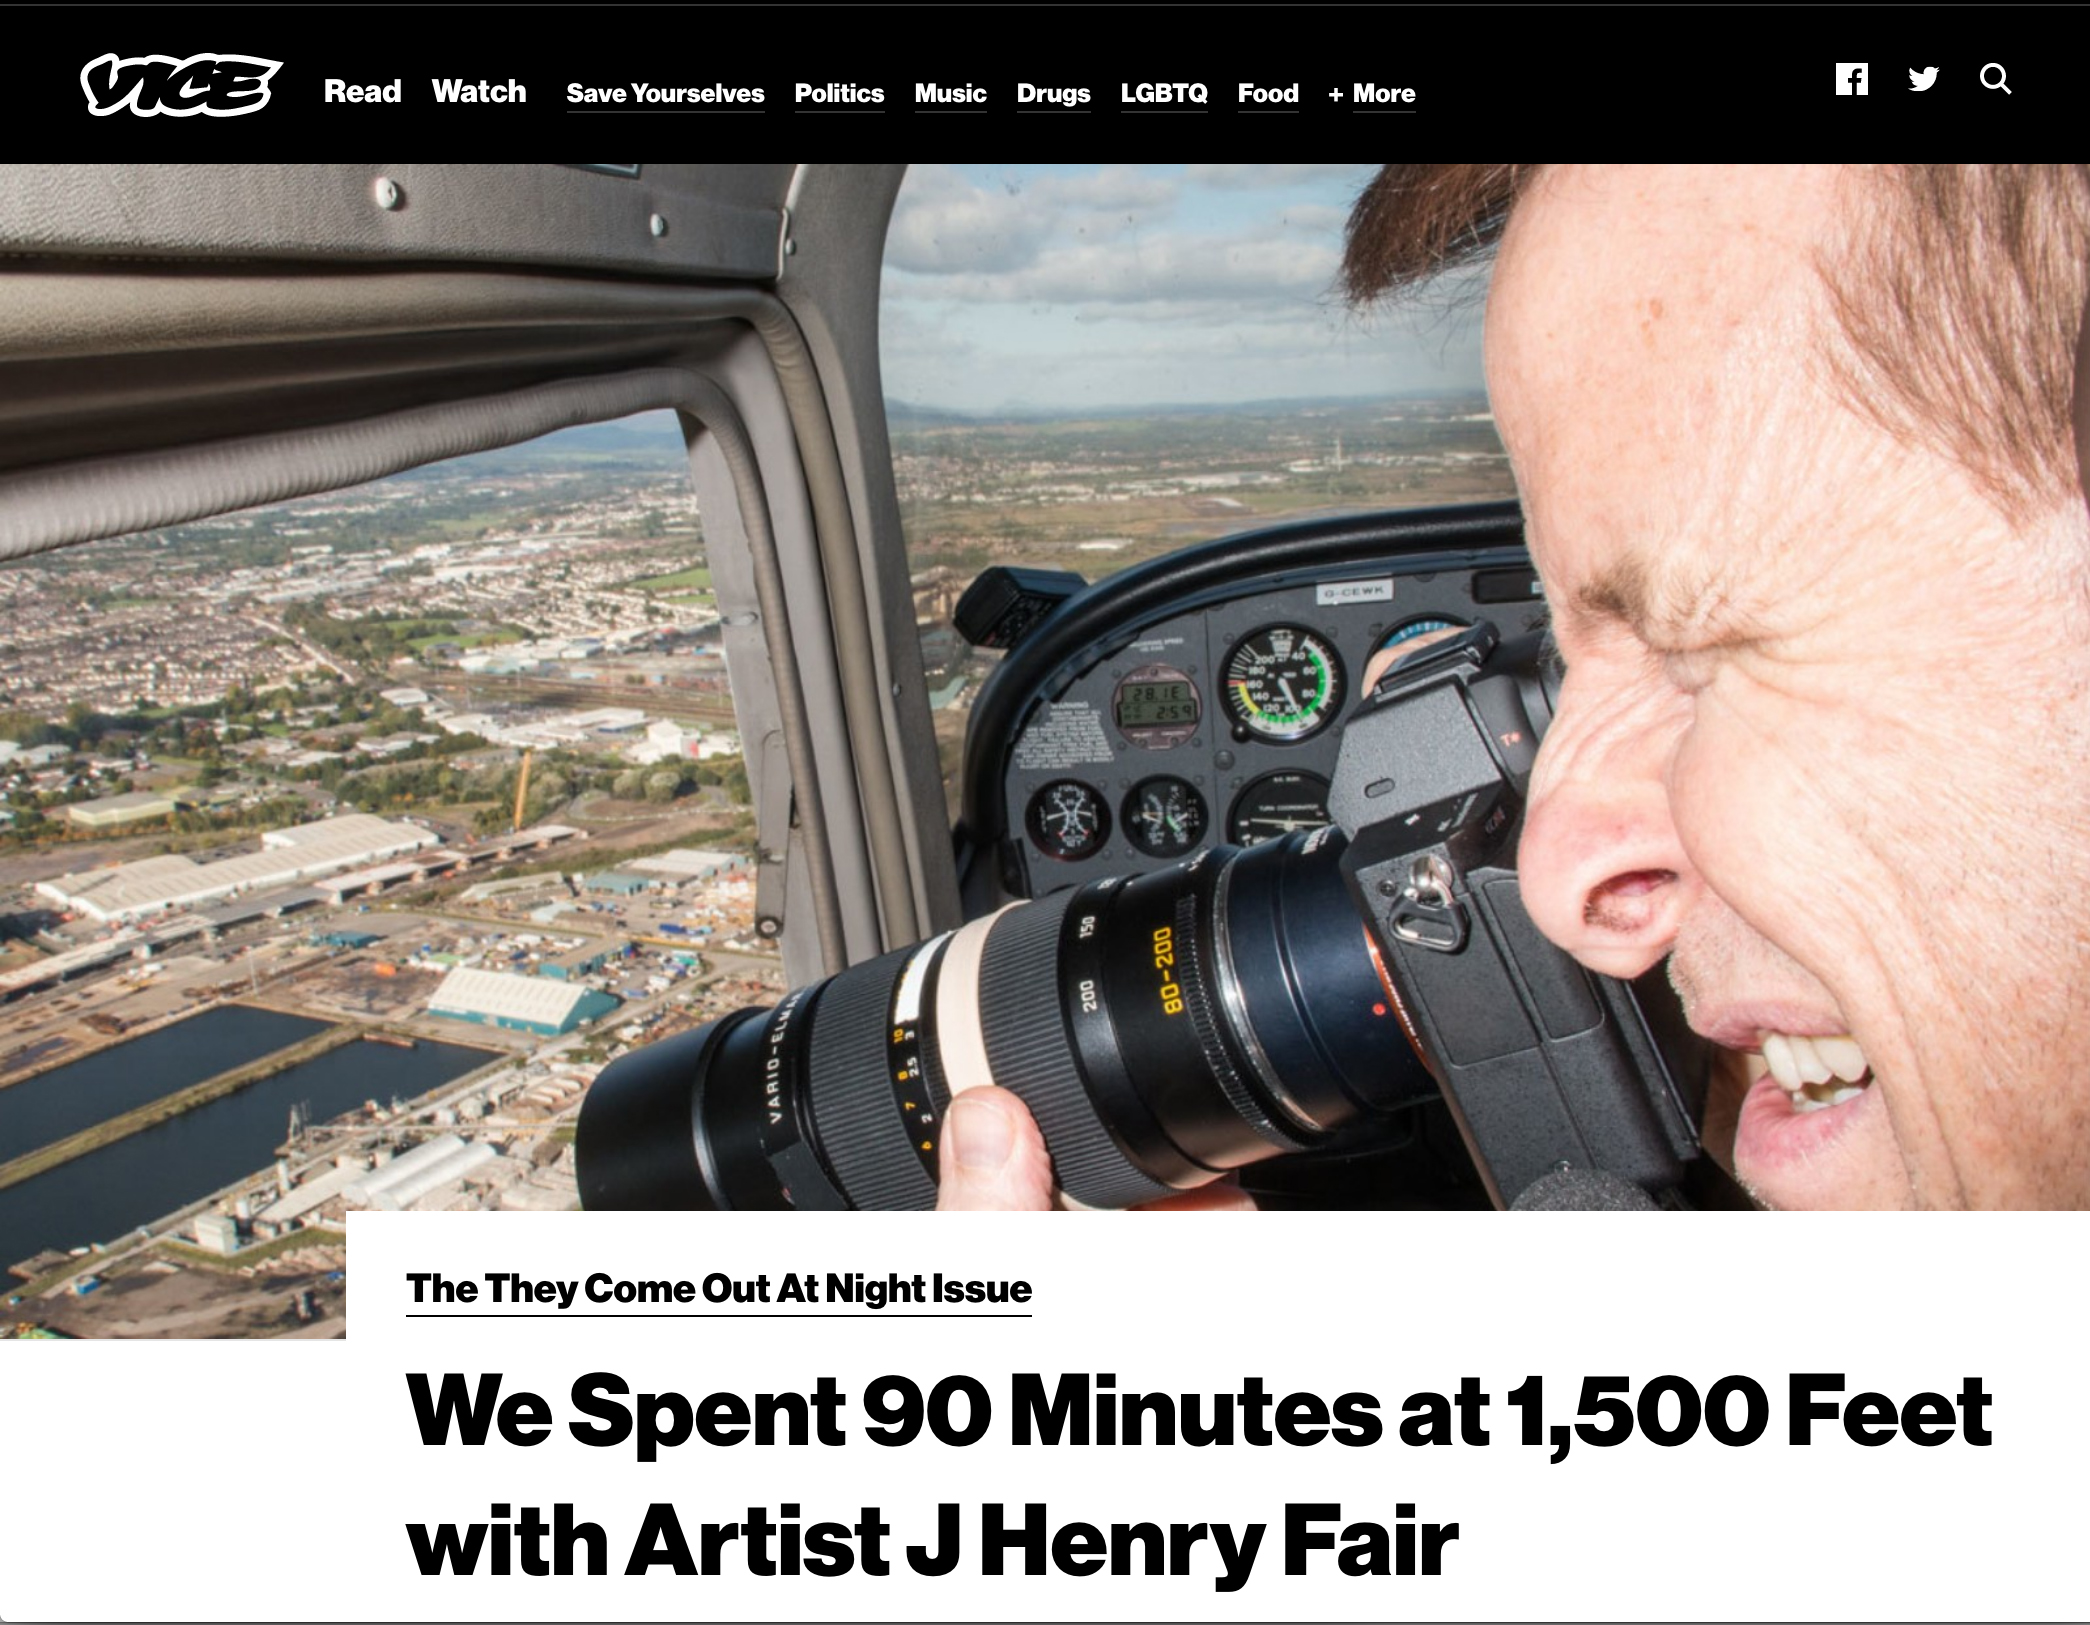 Vice Magazine - We Spent 90 Minutes at 1,500 Feet with Artist J Henry Fair